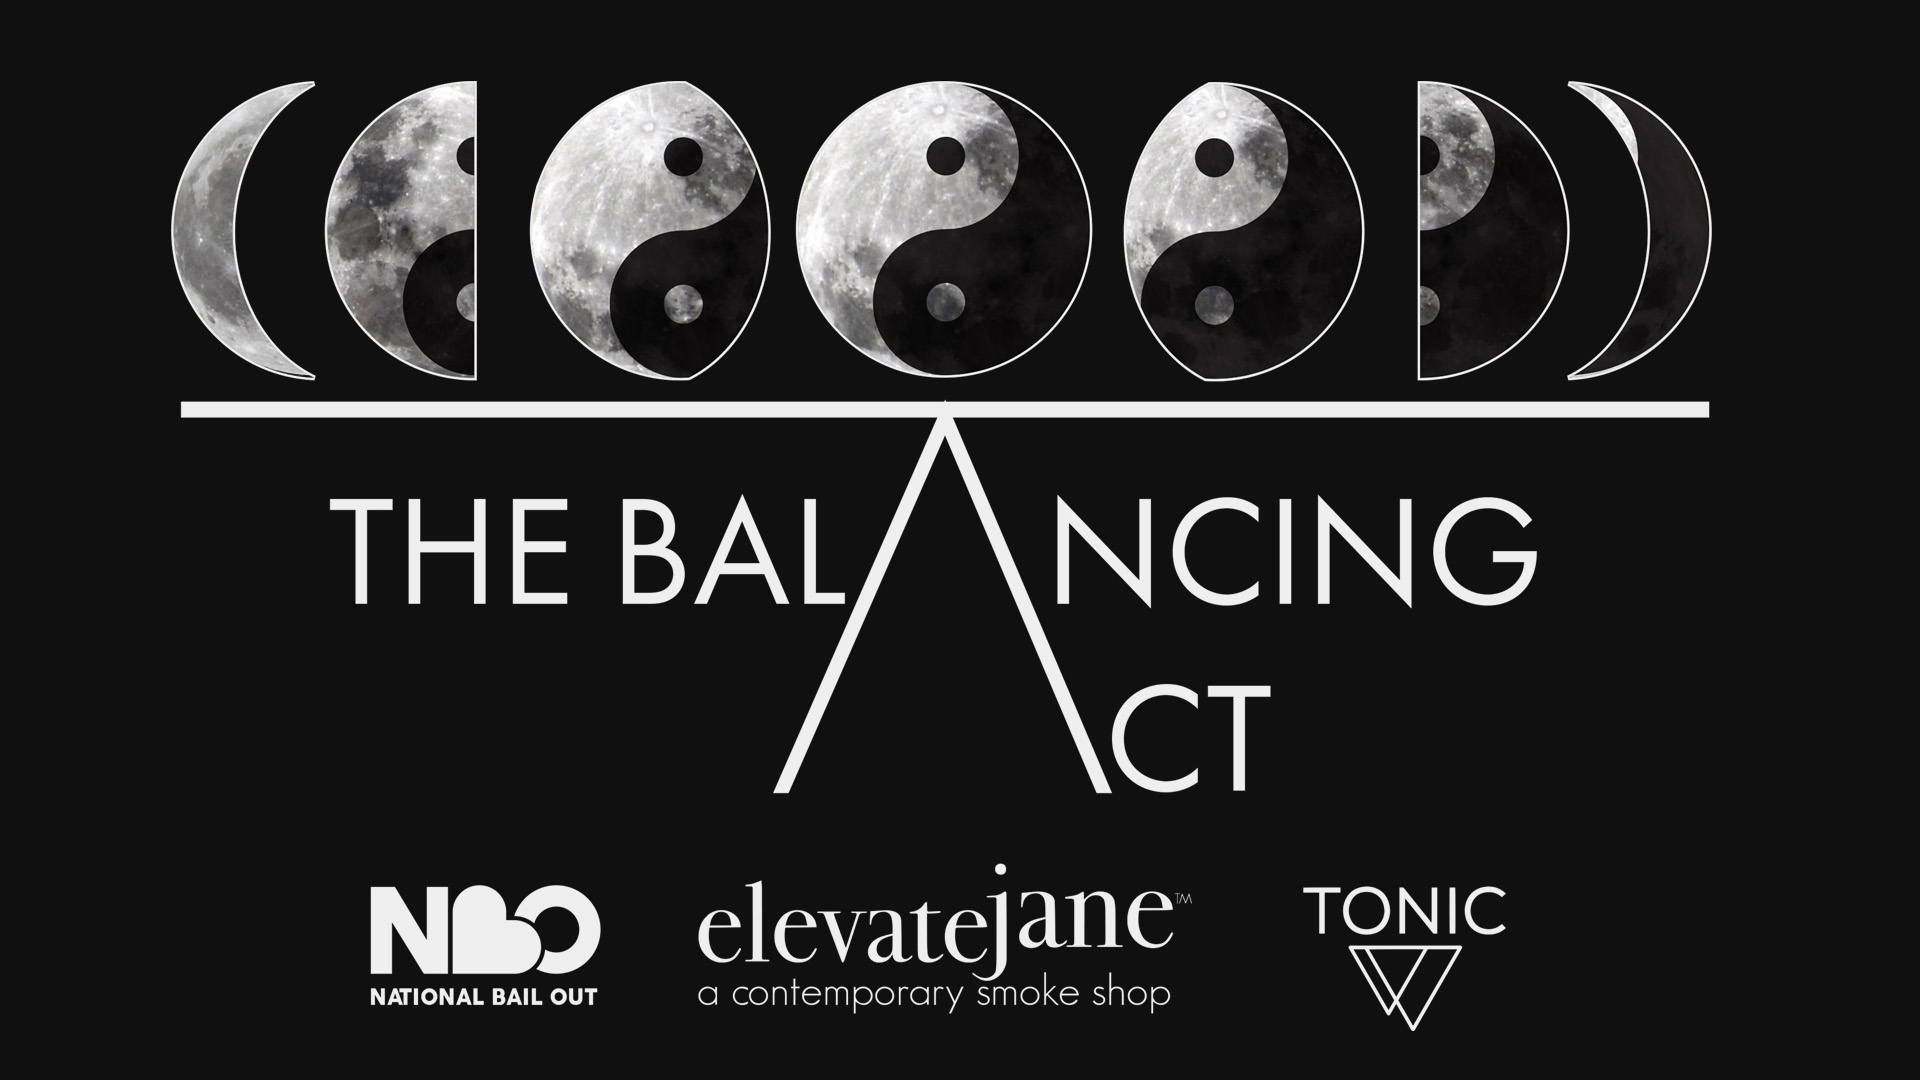 TONIC + Elevate Jane Late Night Fun-raiser to Benefit National Bail Out